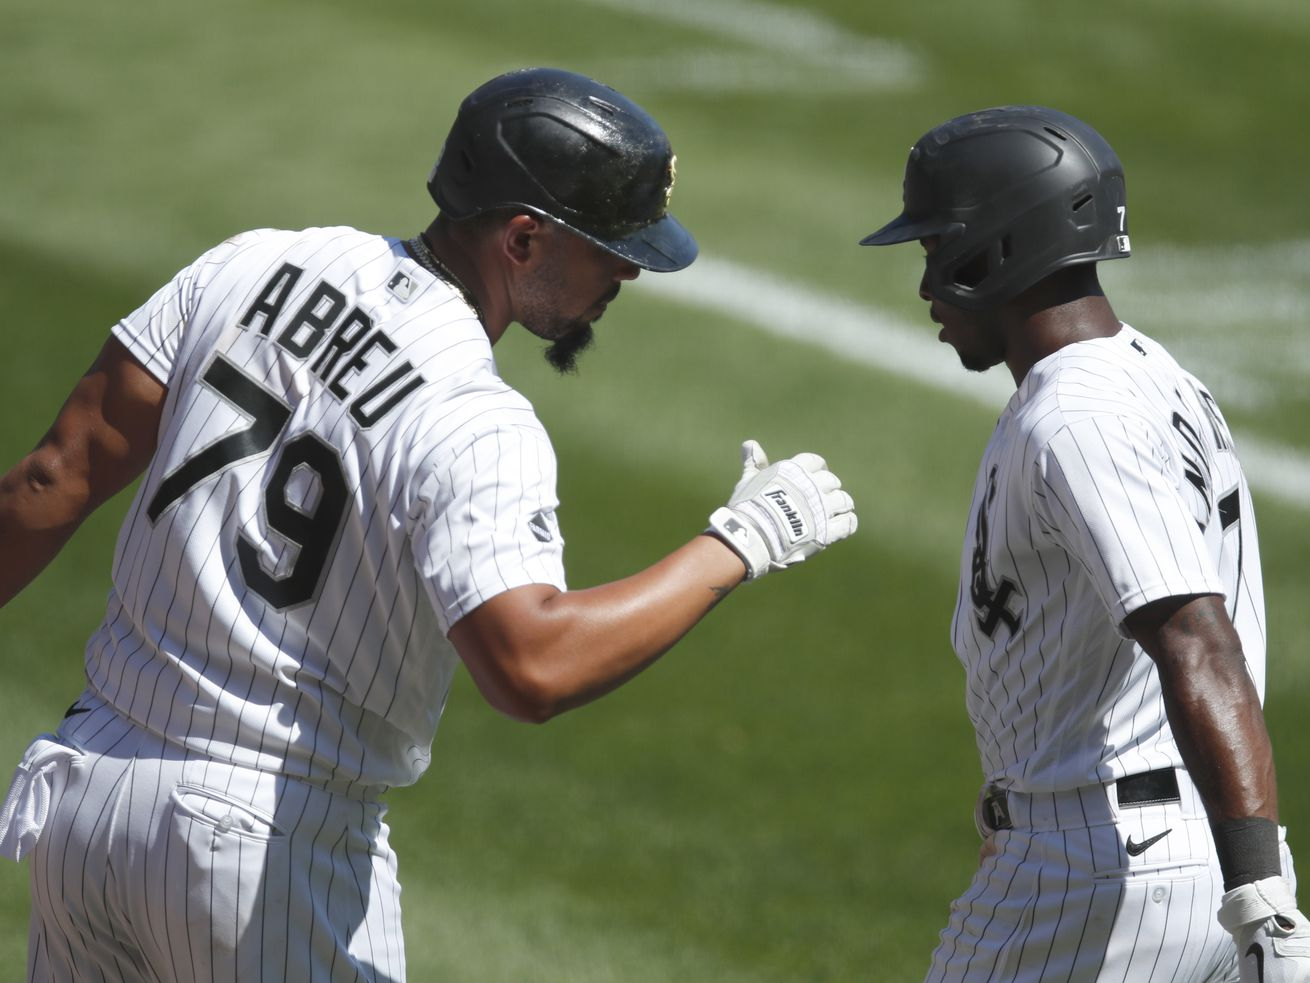 Playoff baseball starts now for mashing White Sox, hitting coach says